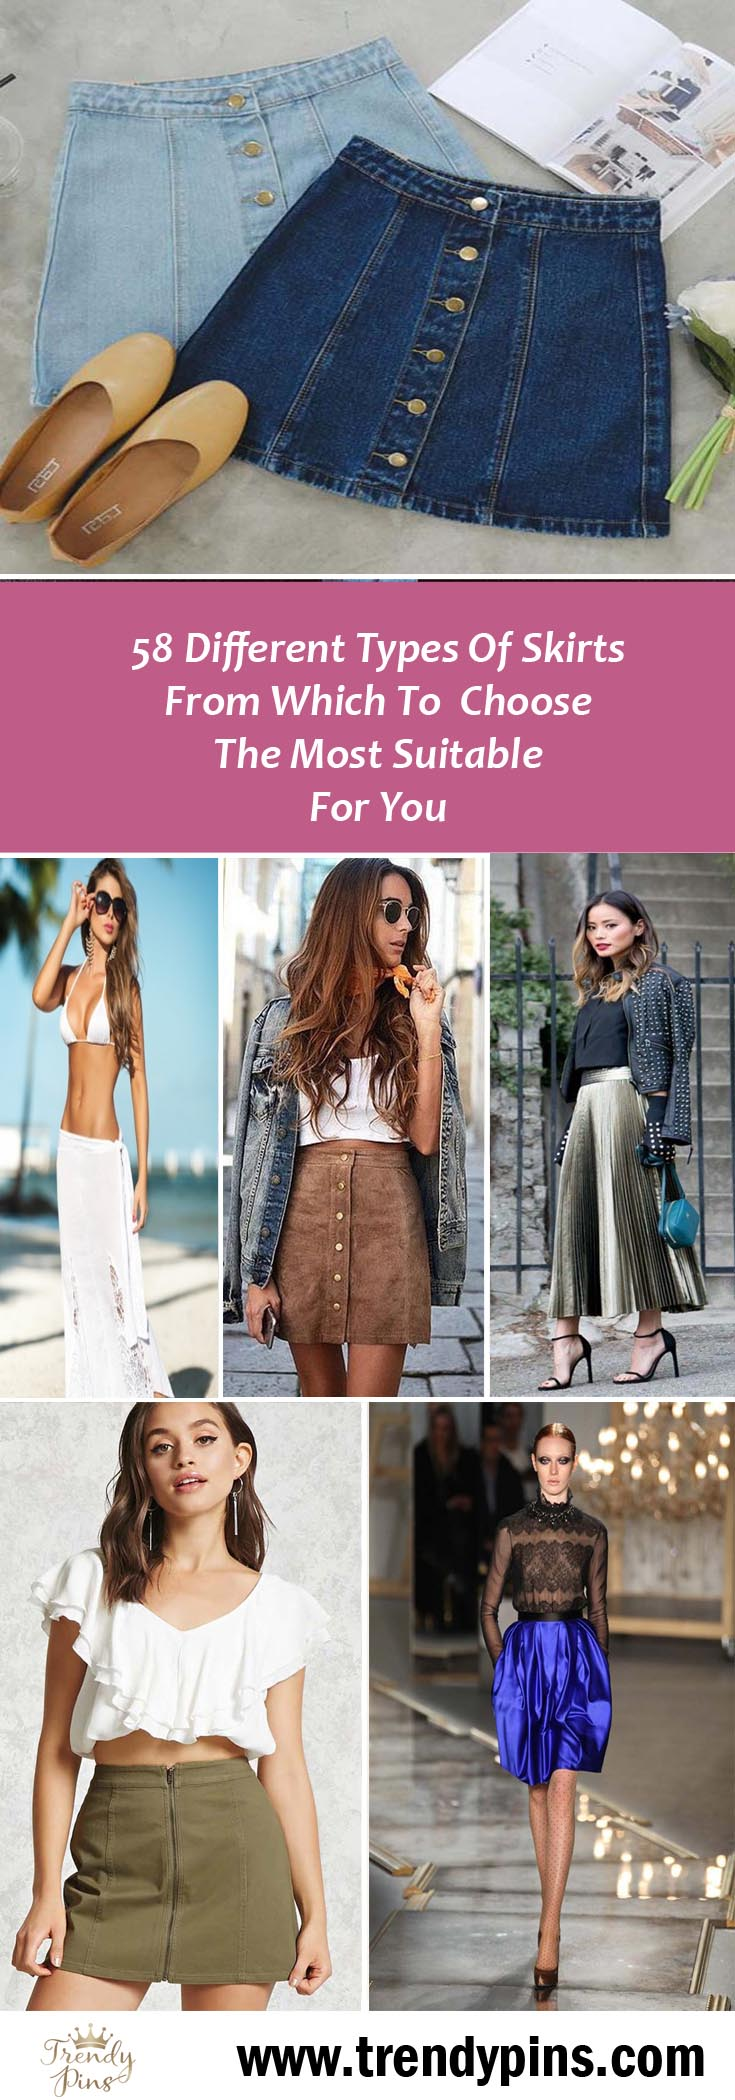 58 Different Types Of Skirts To Choose The Most Suitable For You